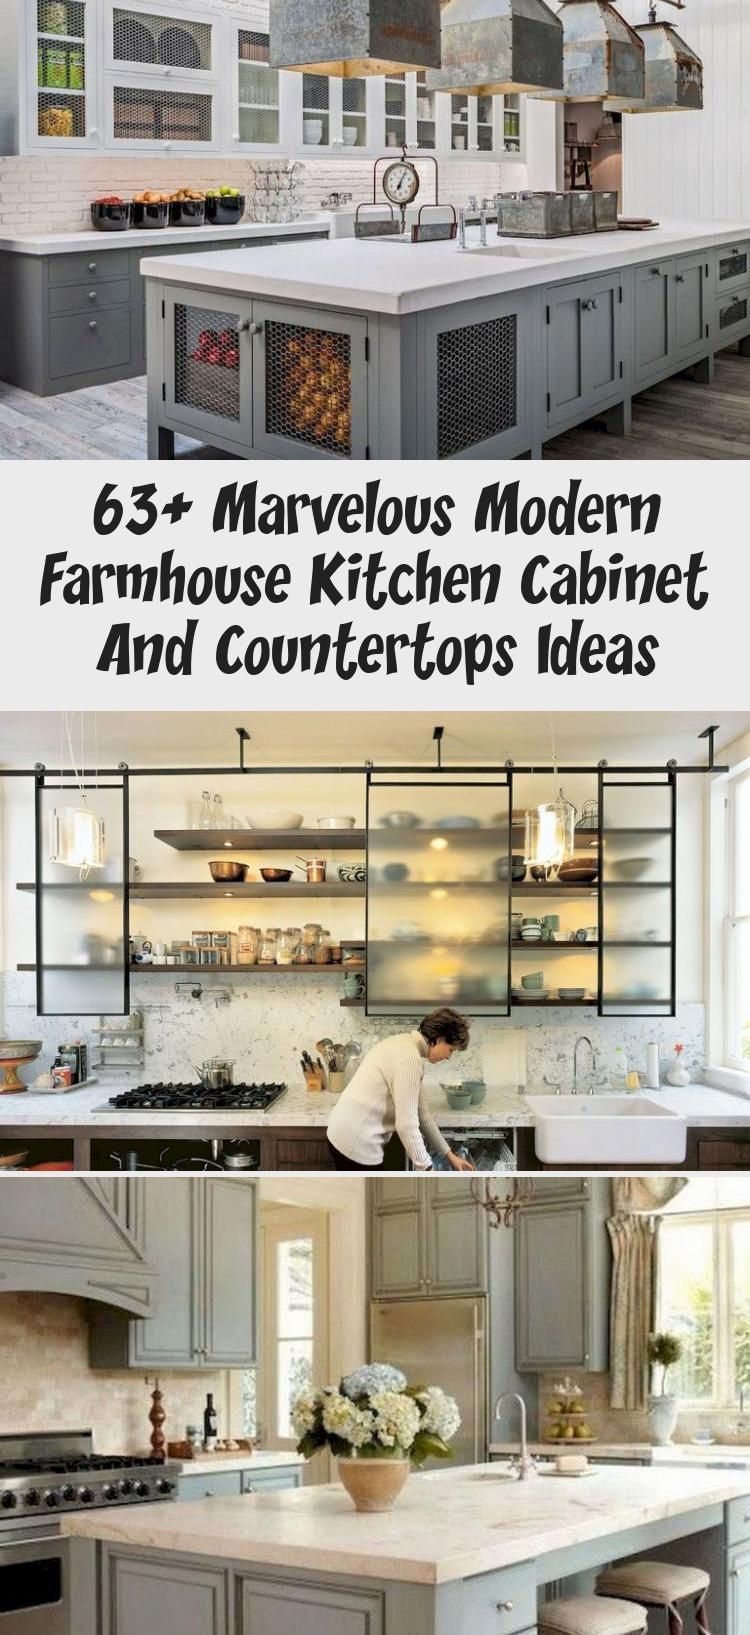 Bellissima Pendelleuchte Weissikarus De In 2020 Cabinets And Countertops Modern Farmhouse Kitchens Kitchen Cabinets And Countertops